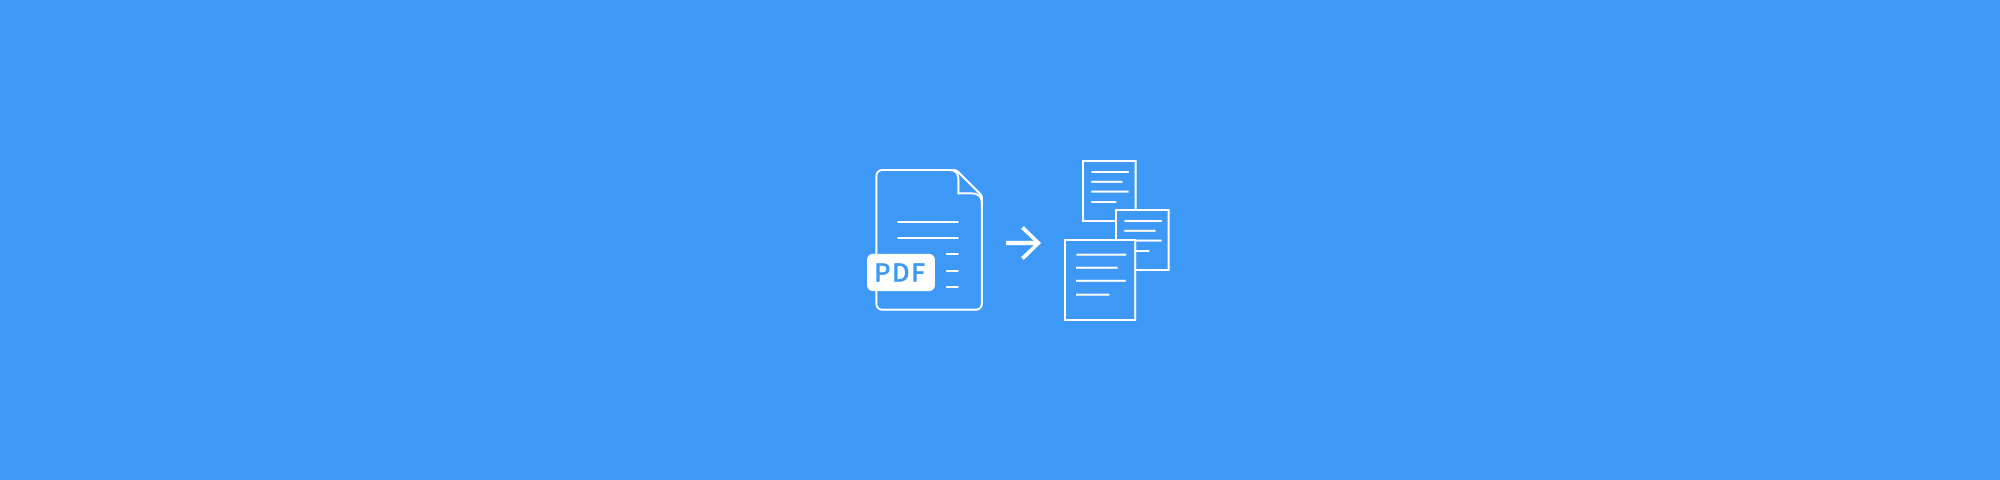 blog-banner: pdf-to-text-free-online-tool-to-convert-pdf-to-txt@2x